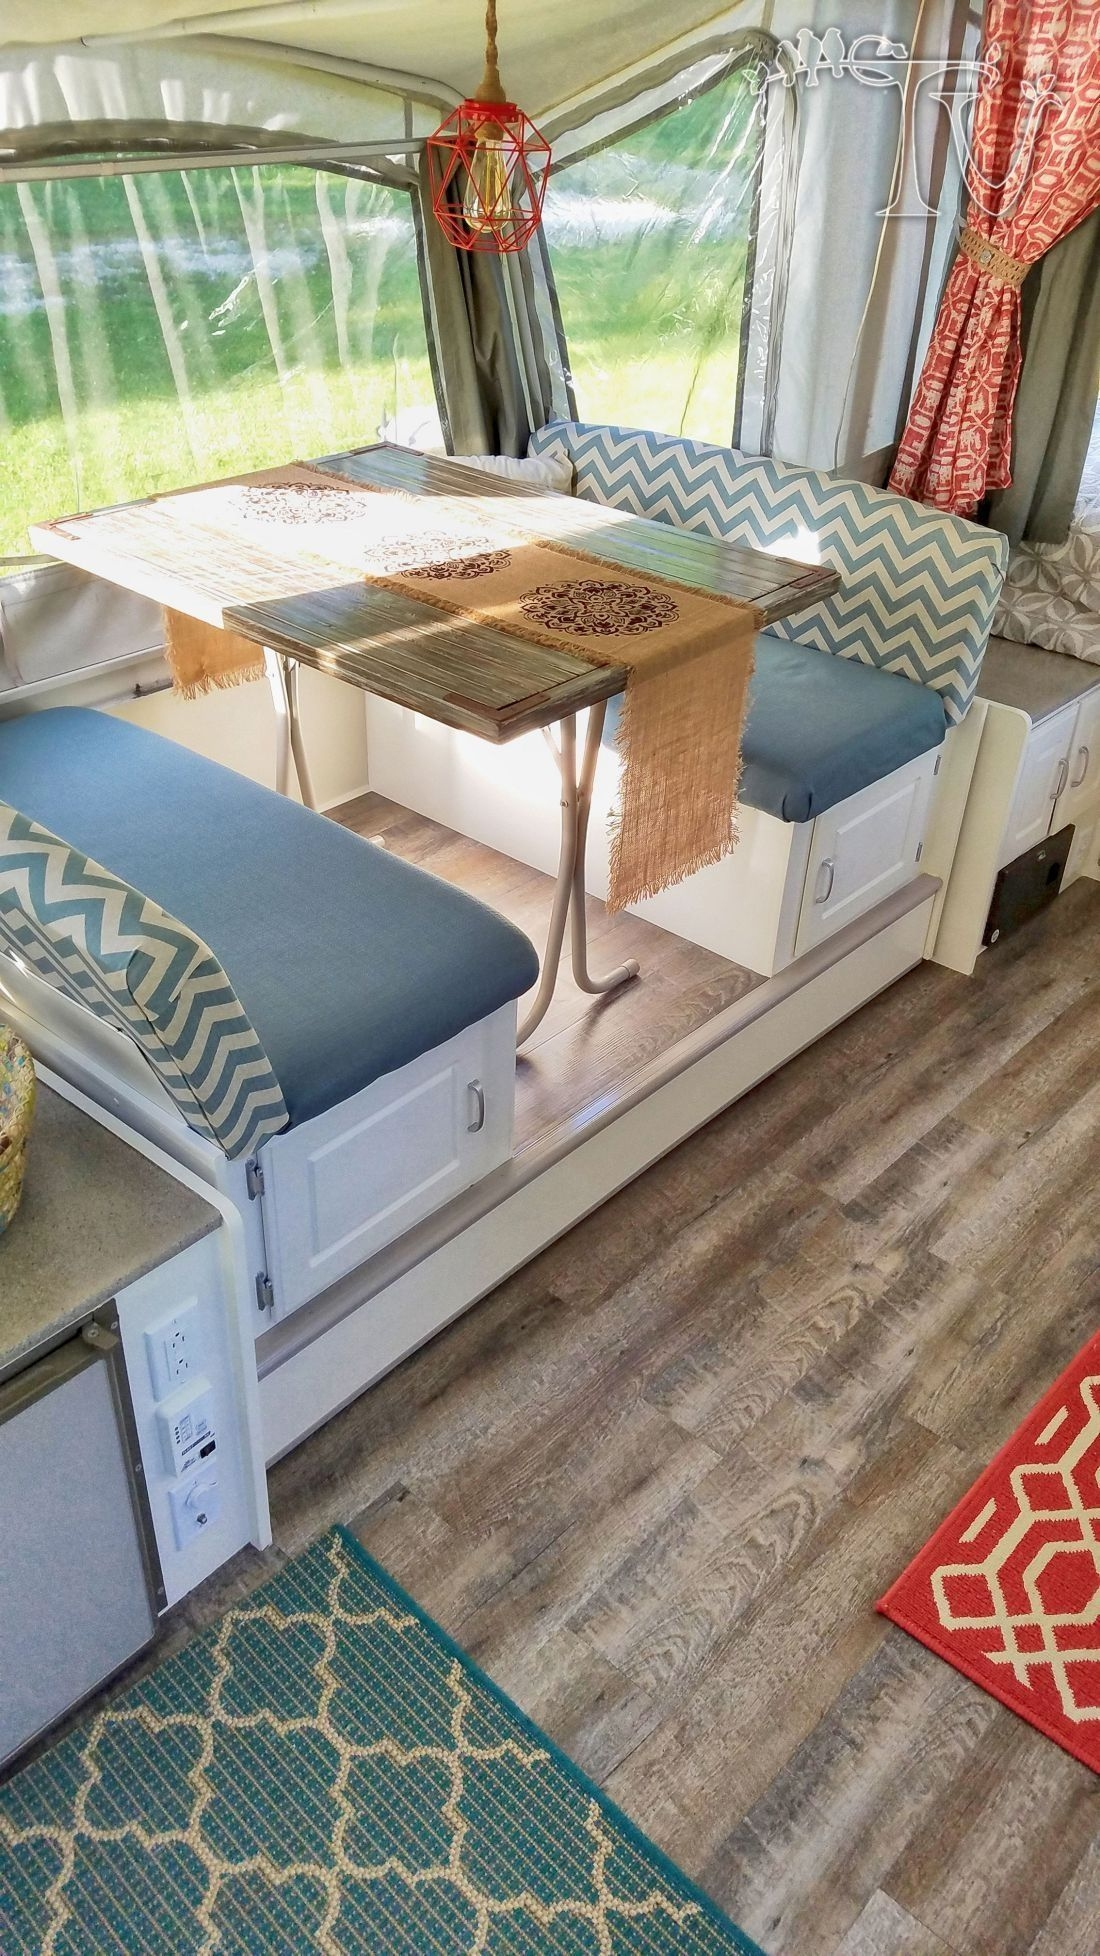 Smart Rv Hacks Table Remodel Ideas On A Budget32